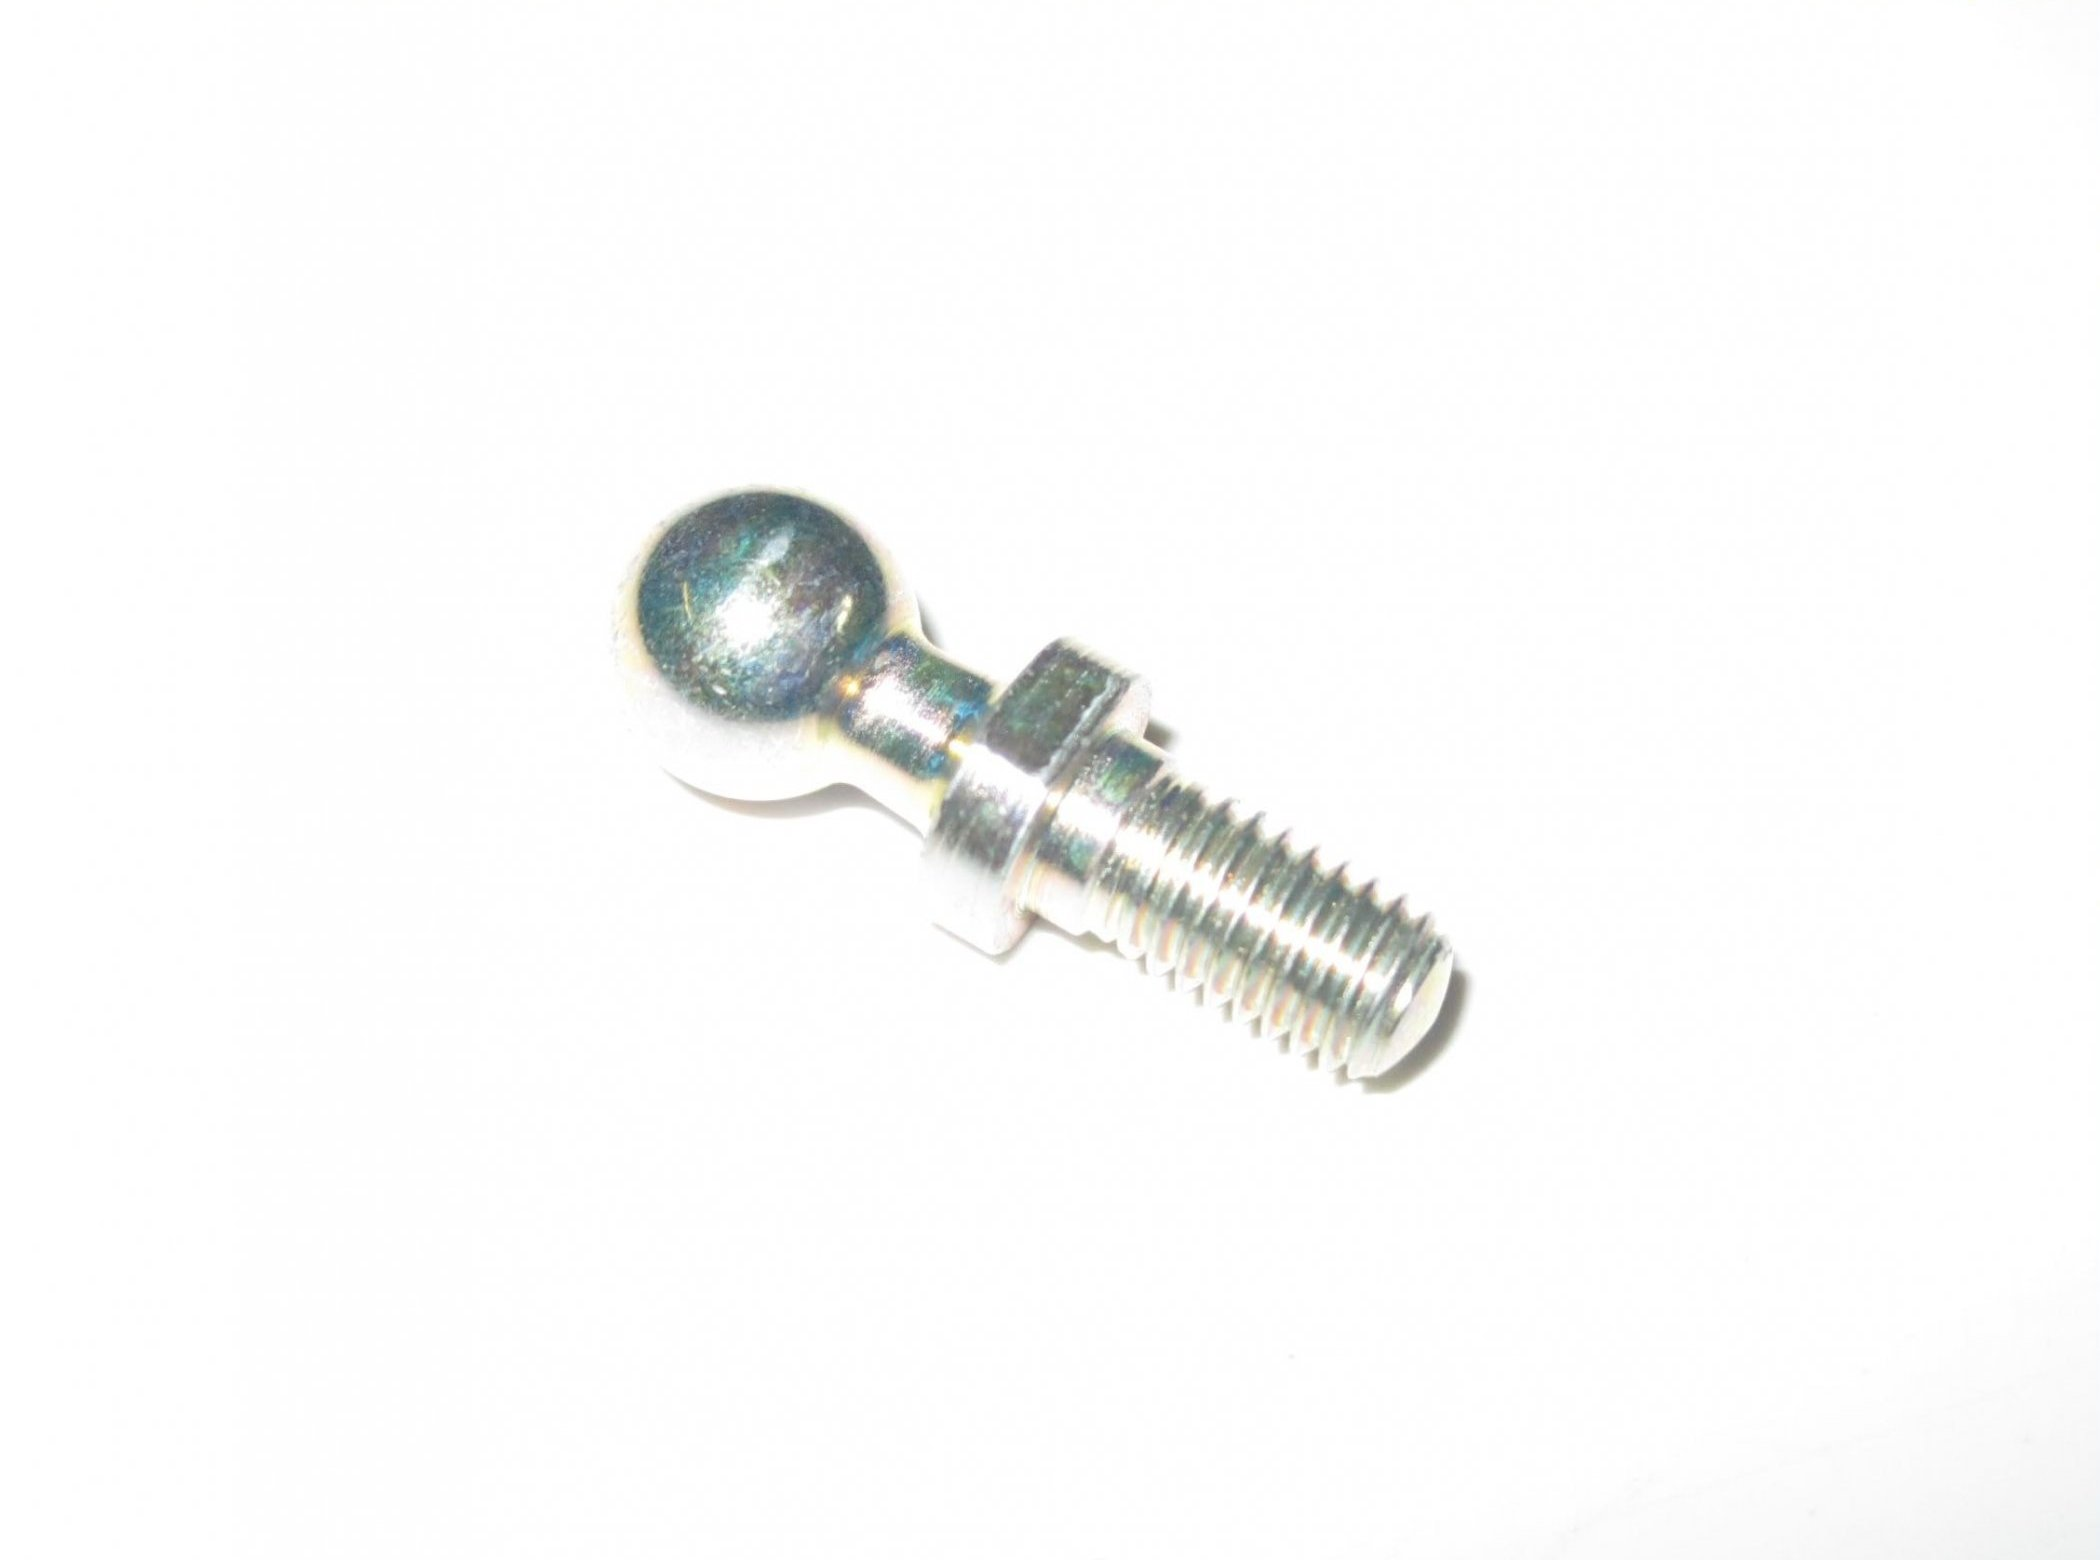 Bmw E38 E30 E28 8 Mm M5 Ball Joint Pivot Pin